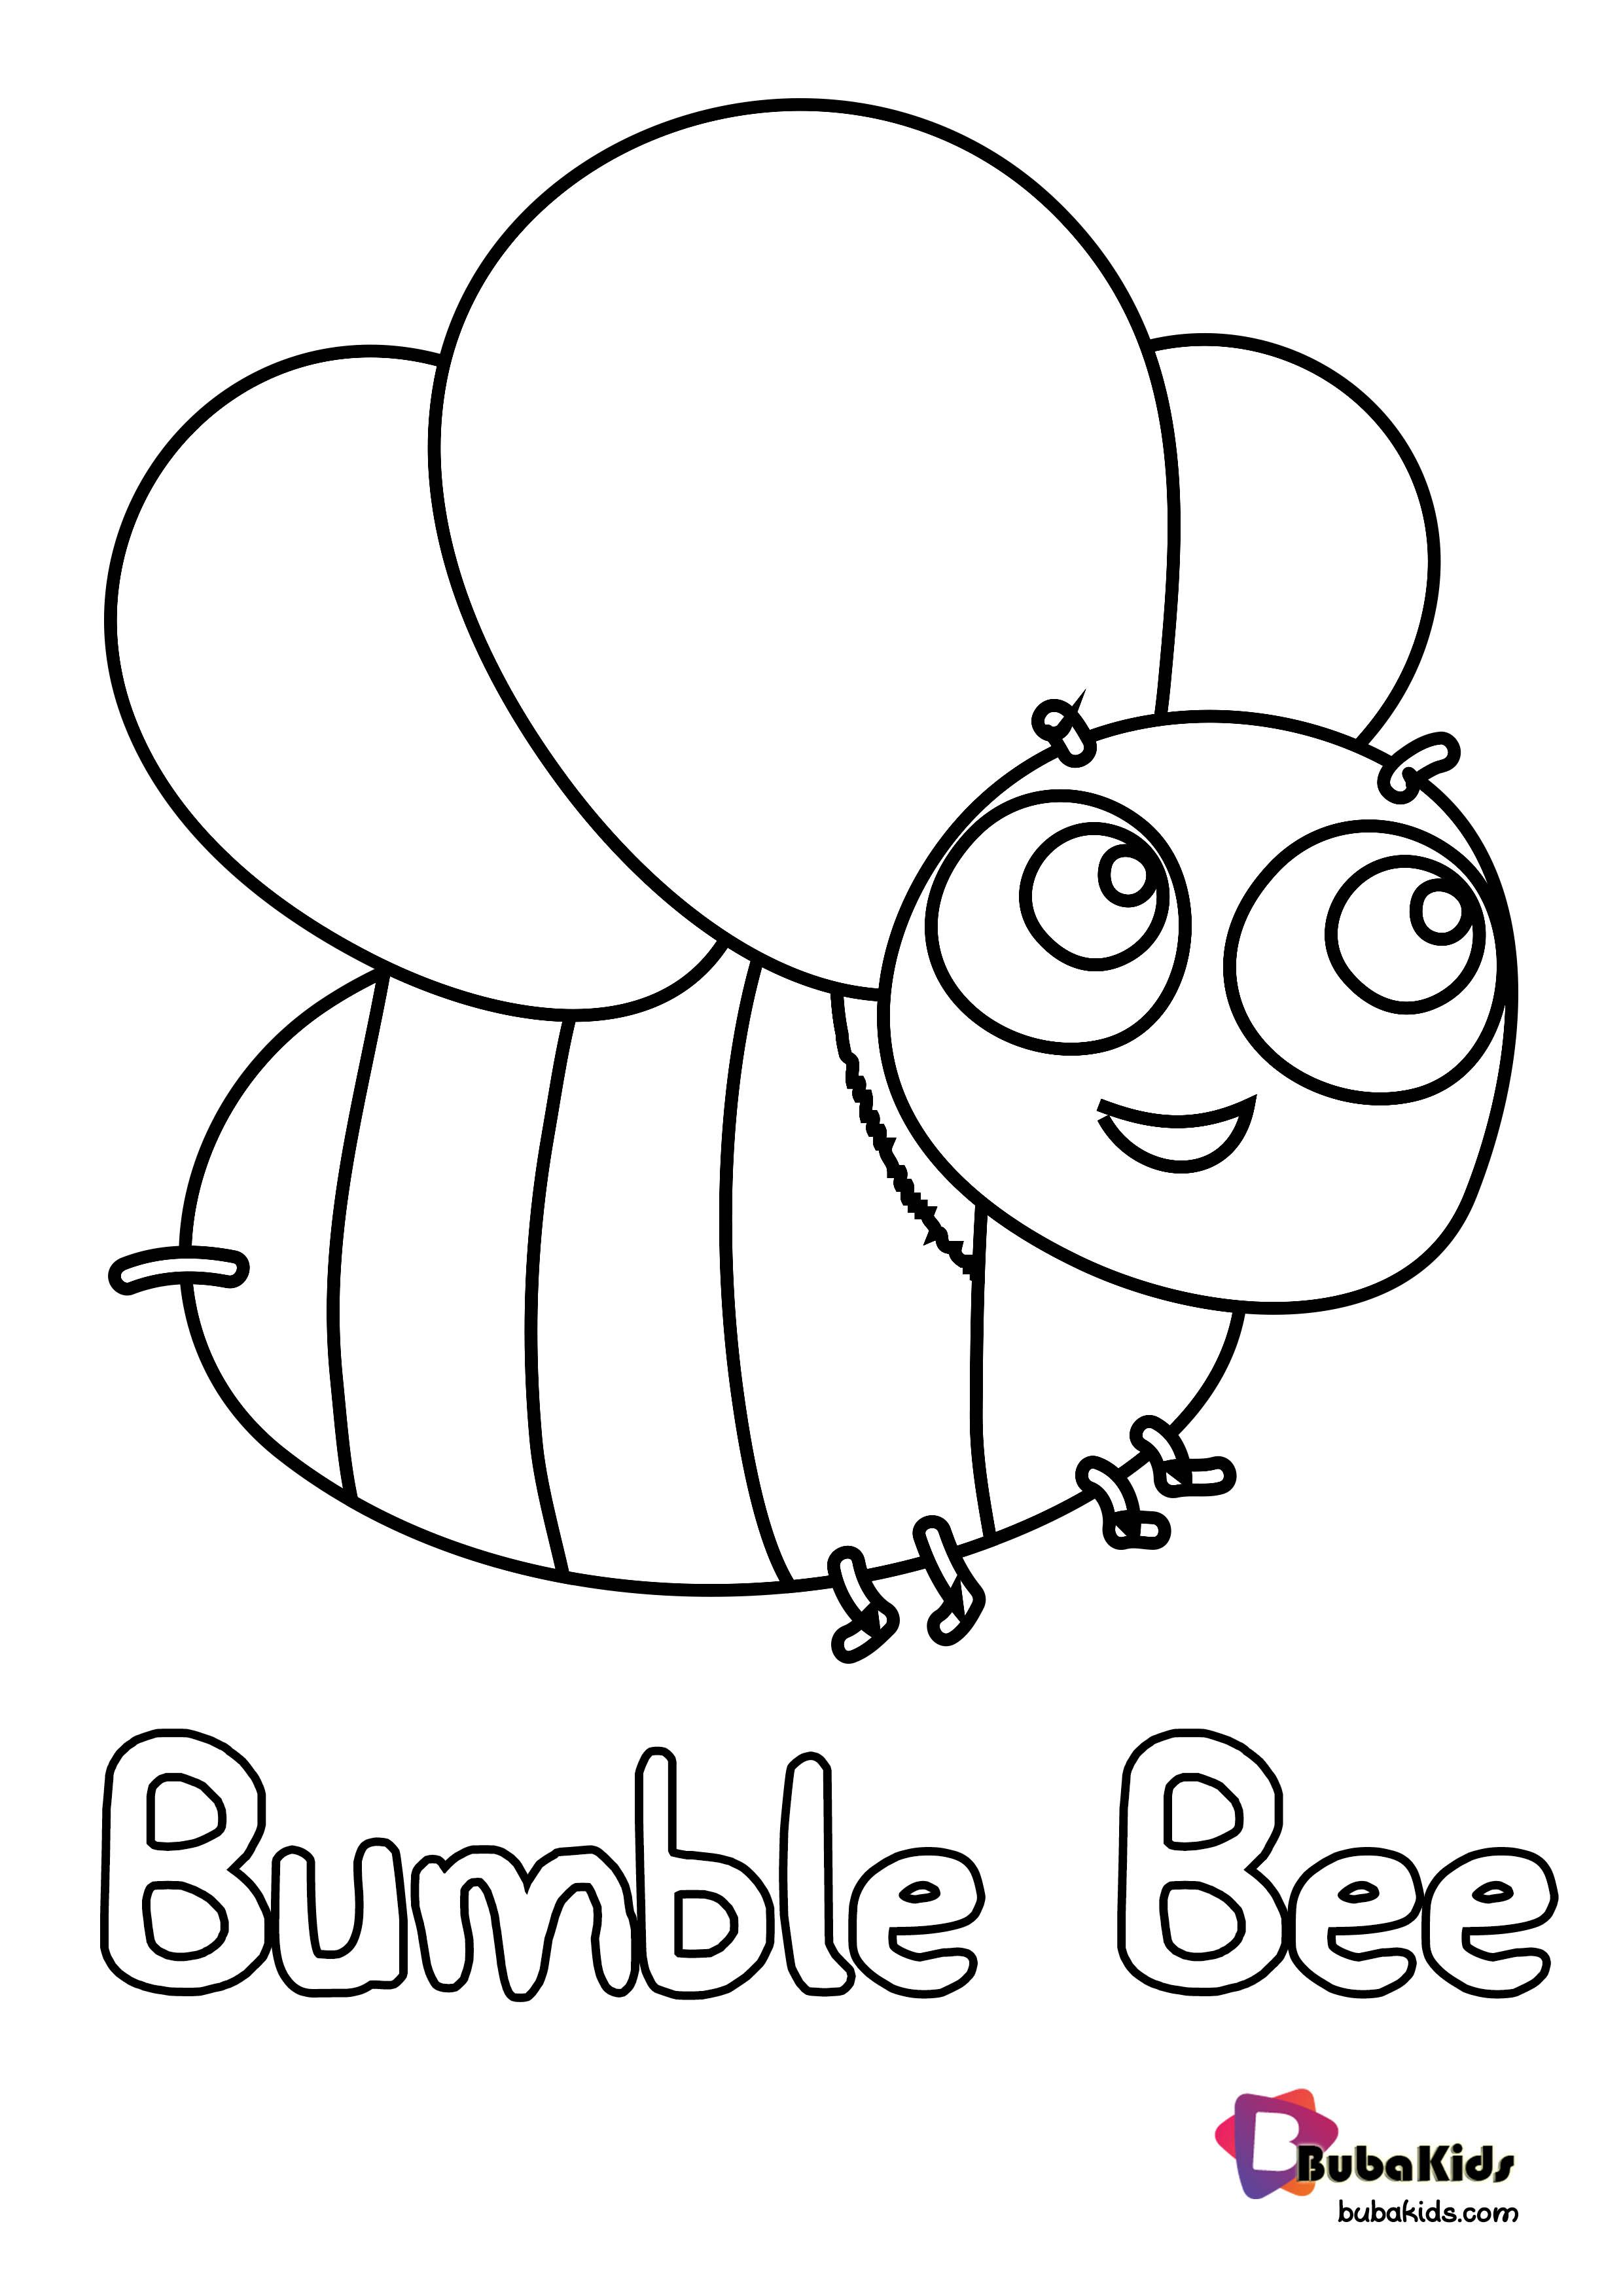 Bumblebee Insect Coloring Pages Background